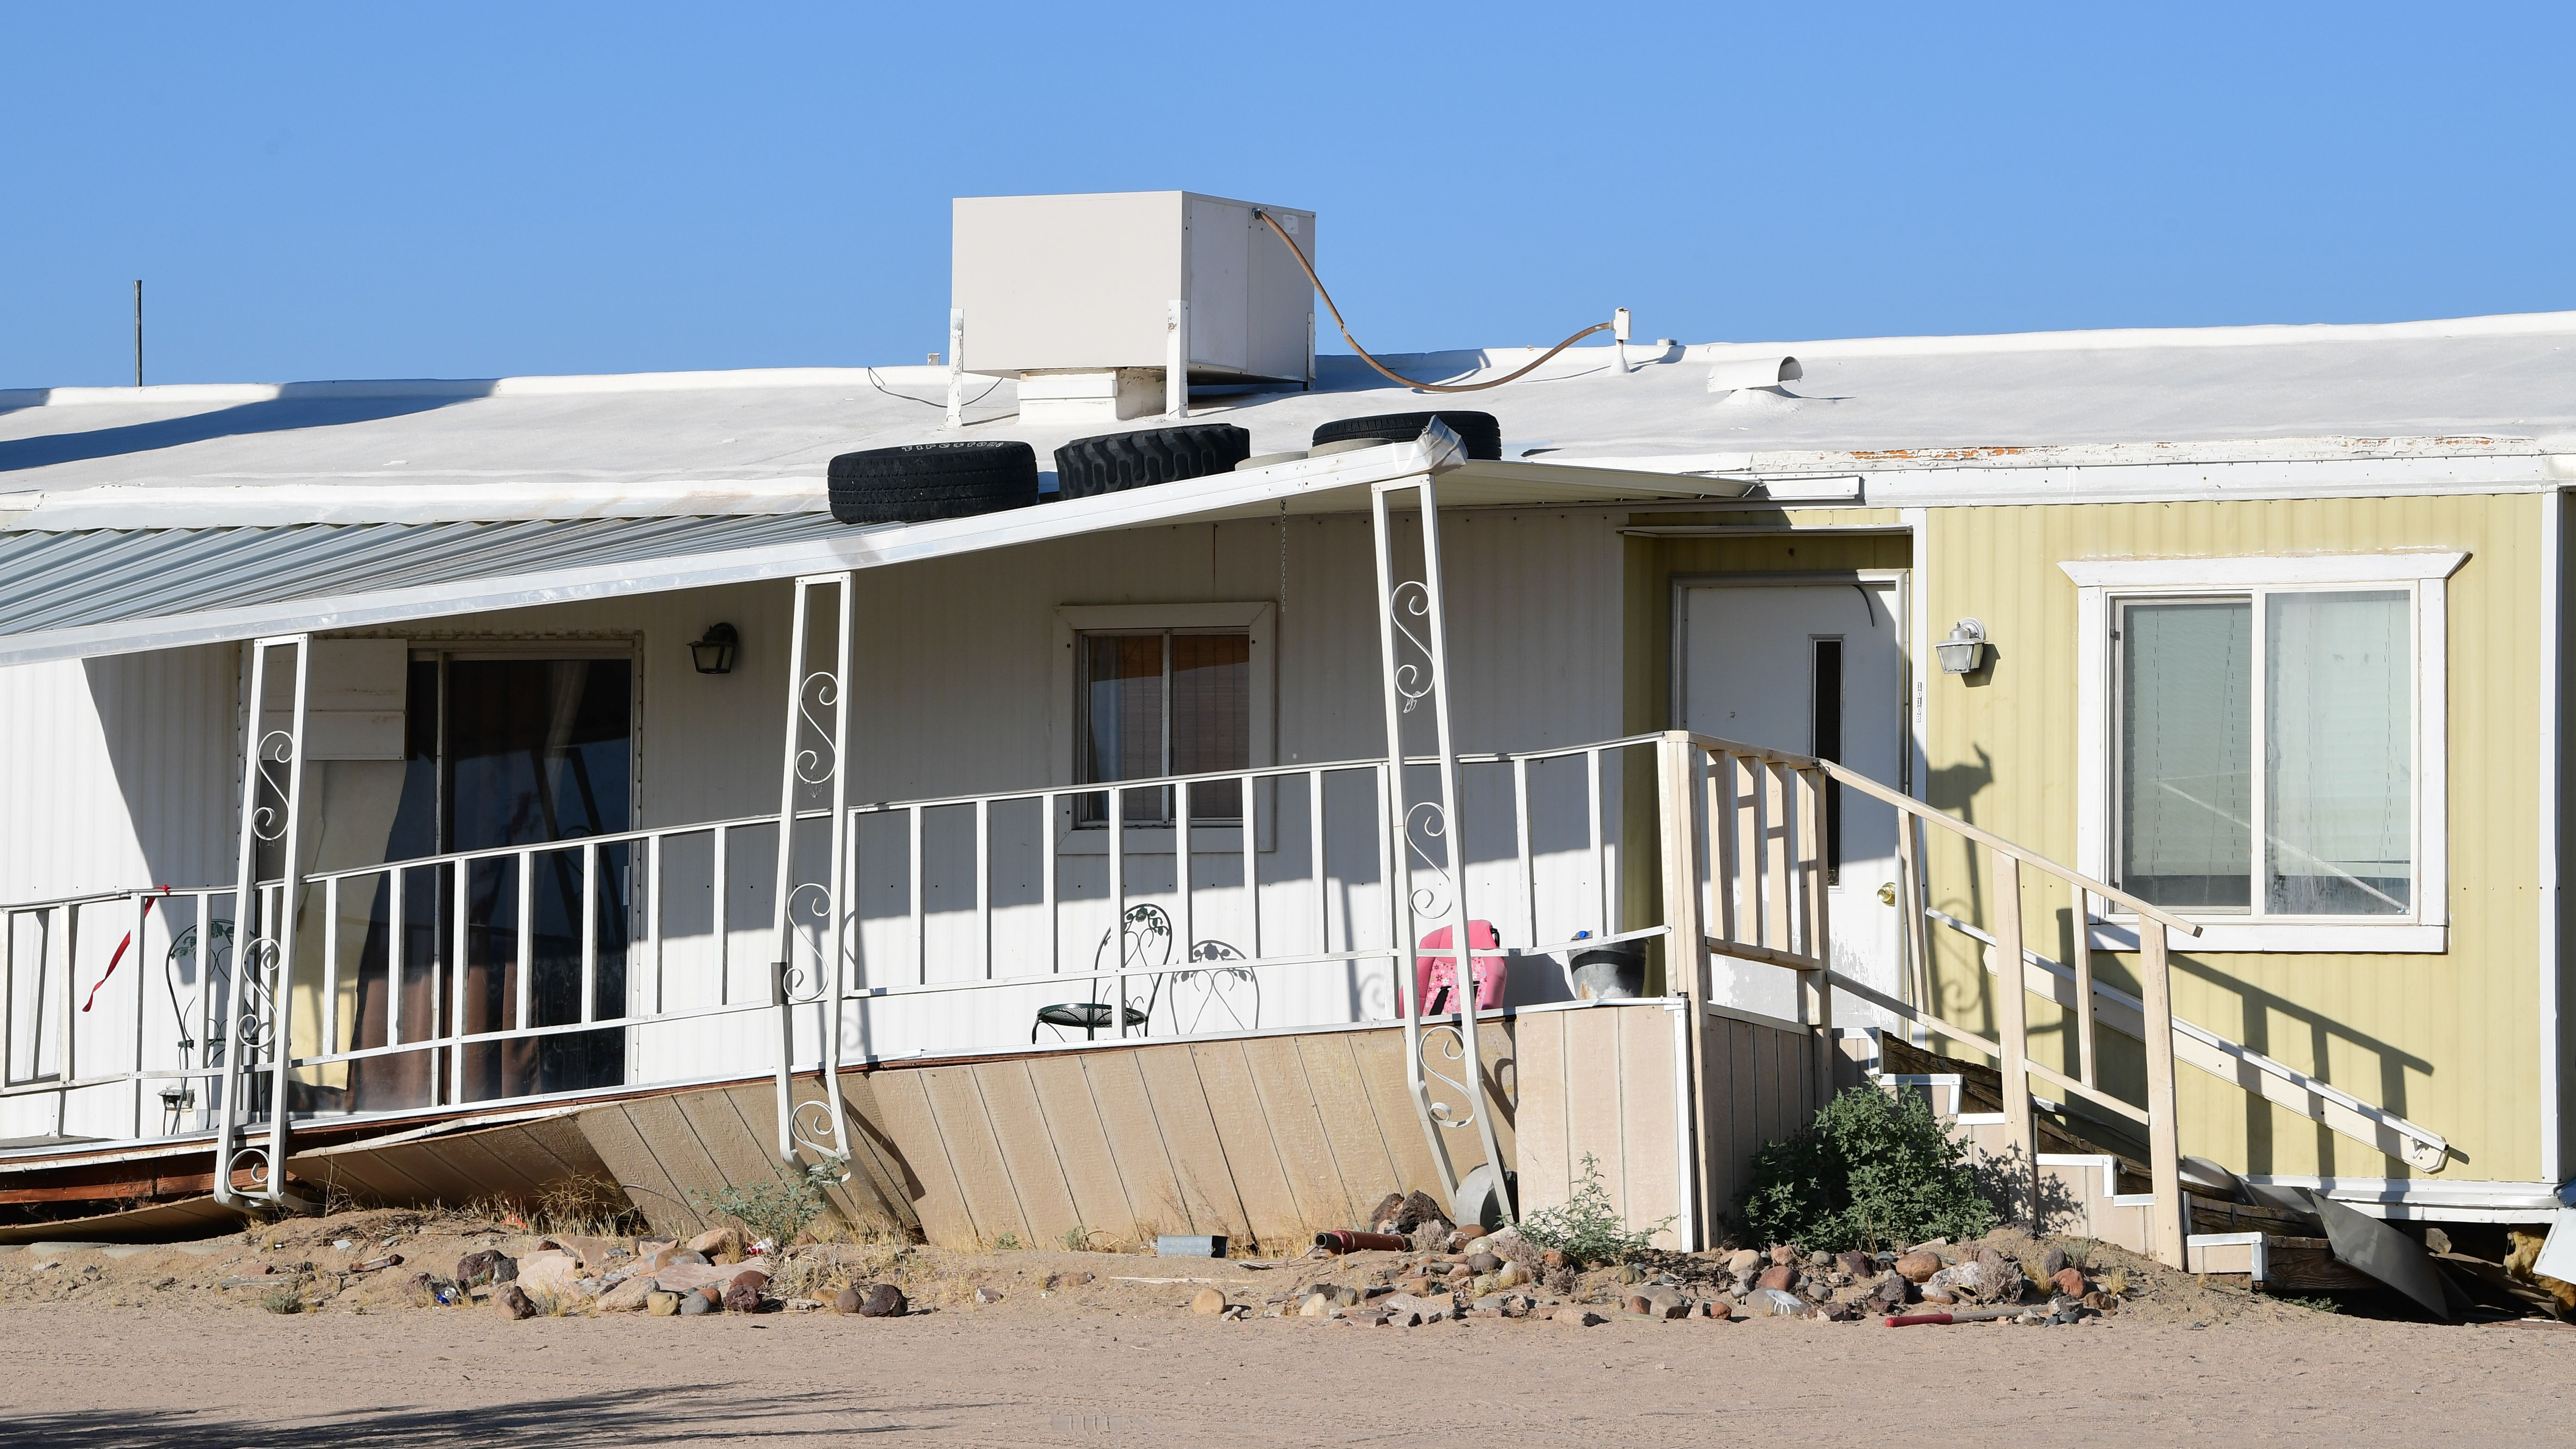 A damaged home is seen after a 6.4-magnitude earthquake hit in Ridgecrest, California, on July 4, 2019. - Southern California was rocked by a 6.4-magnitude earthquake Thursday morning, the US Geological Survey said, with authorities warning that the temblor, the largest in two decades, might not be the day's last. (Photo by FREDERIC J. BROWN / AFP) (Photo credit should read FREDERIC J. BROWN/AFP/Getty Images)